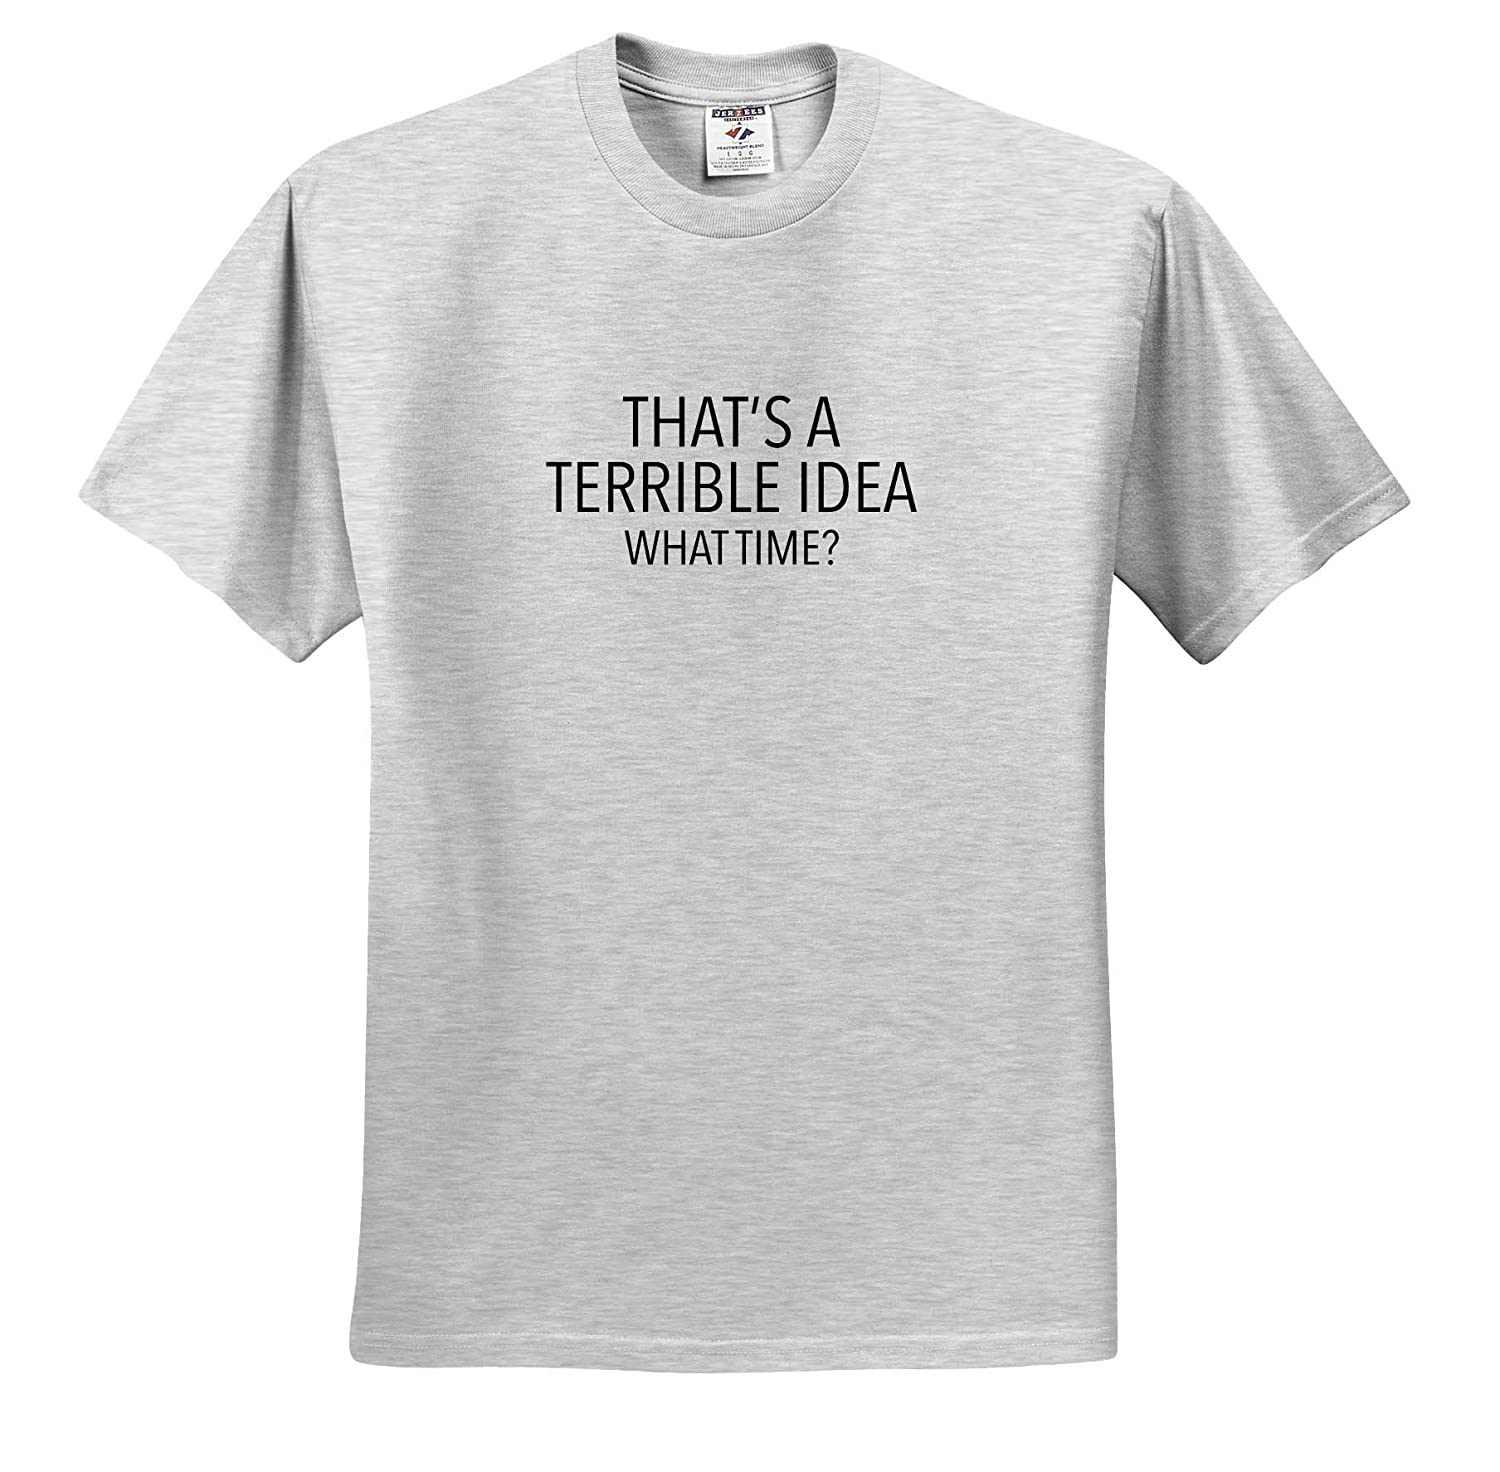 Thats A Terrible Idea What Time Black Adult T-Shirt XL Funny Sayings ts/_320936 3dRose EvaDane